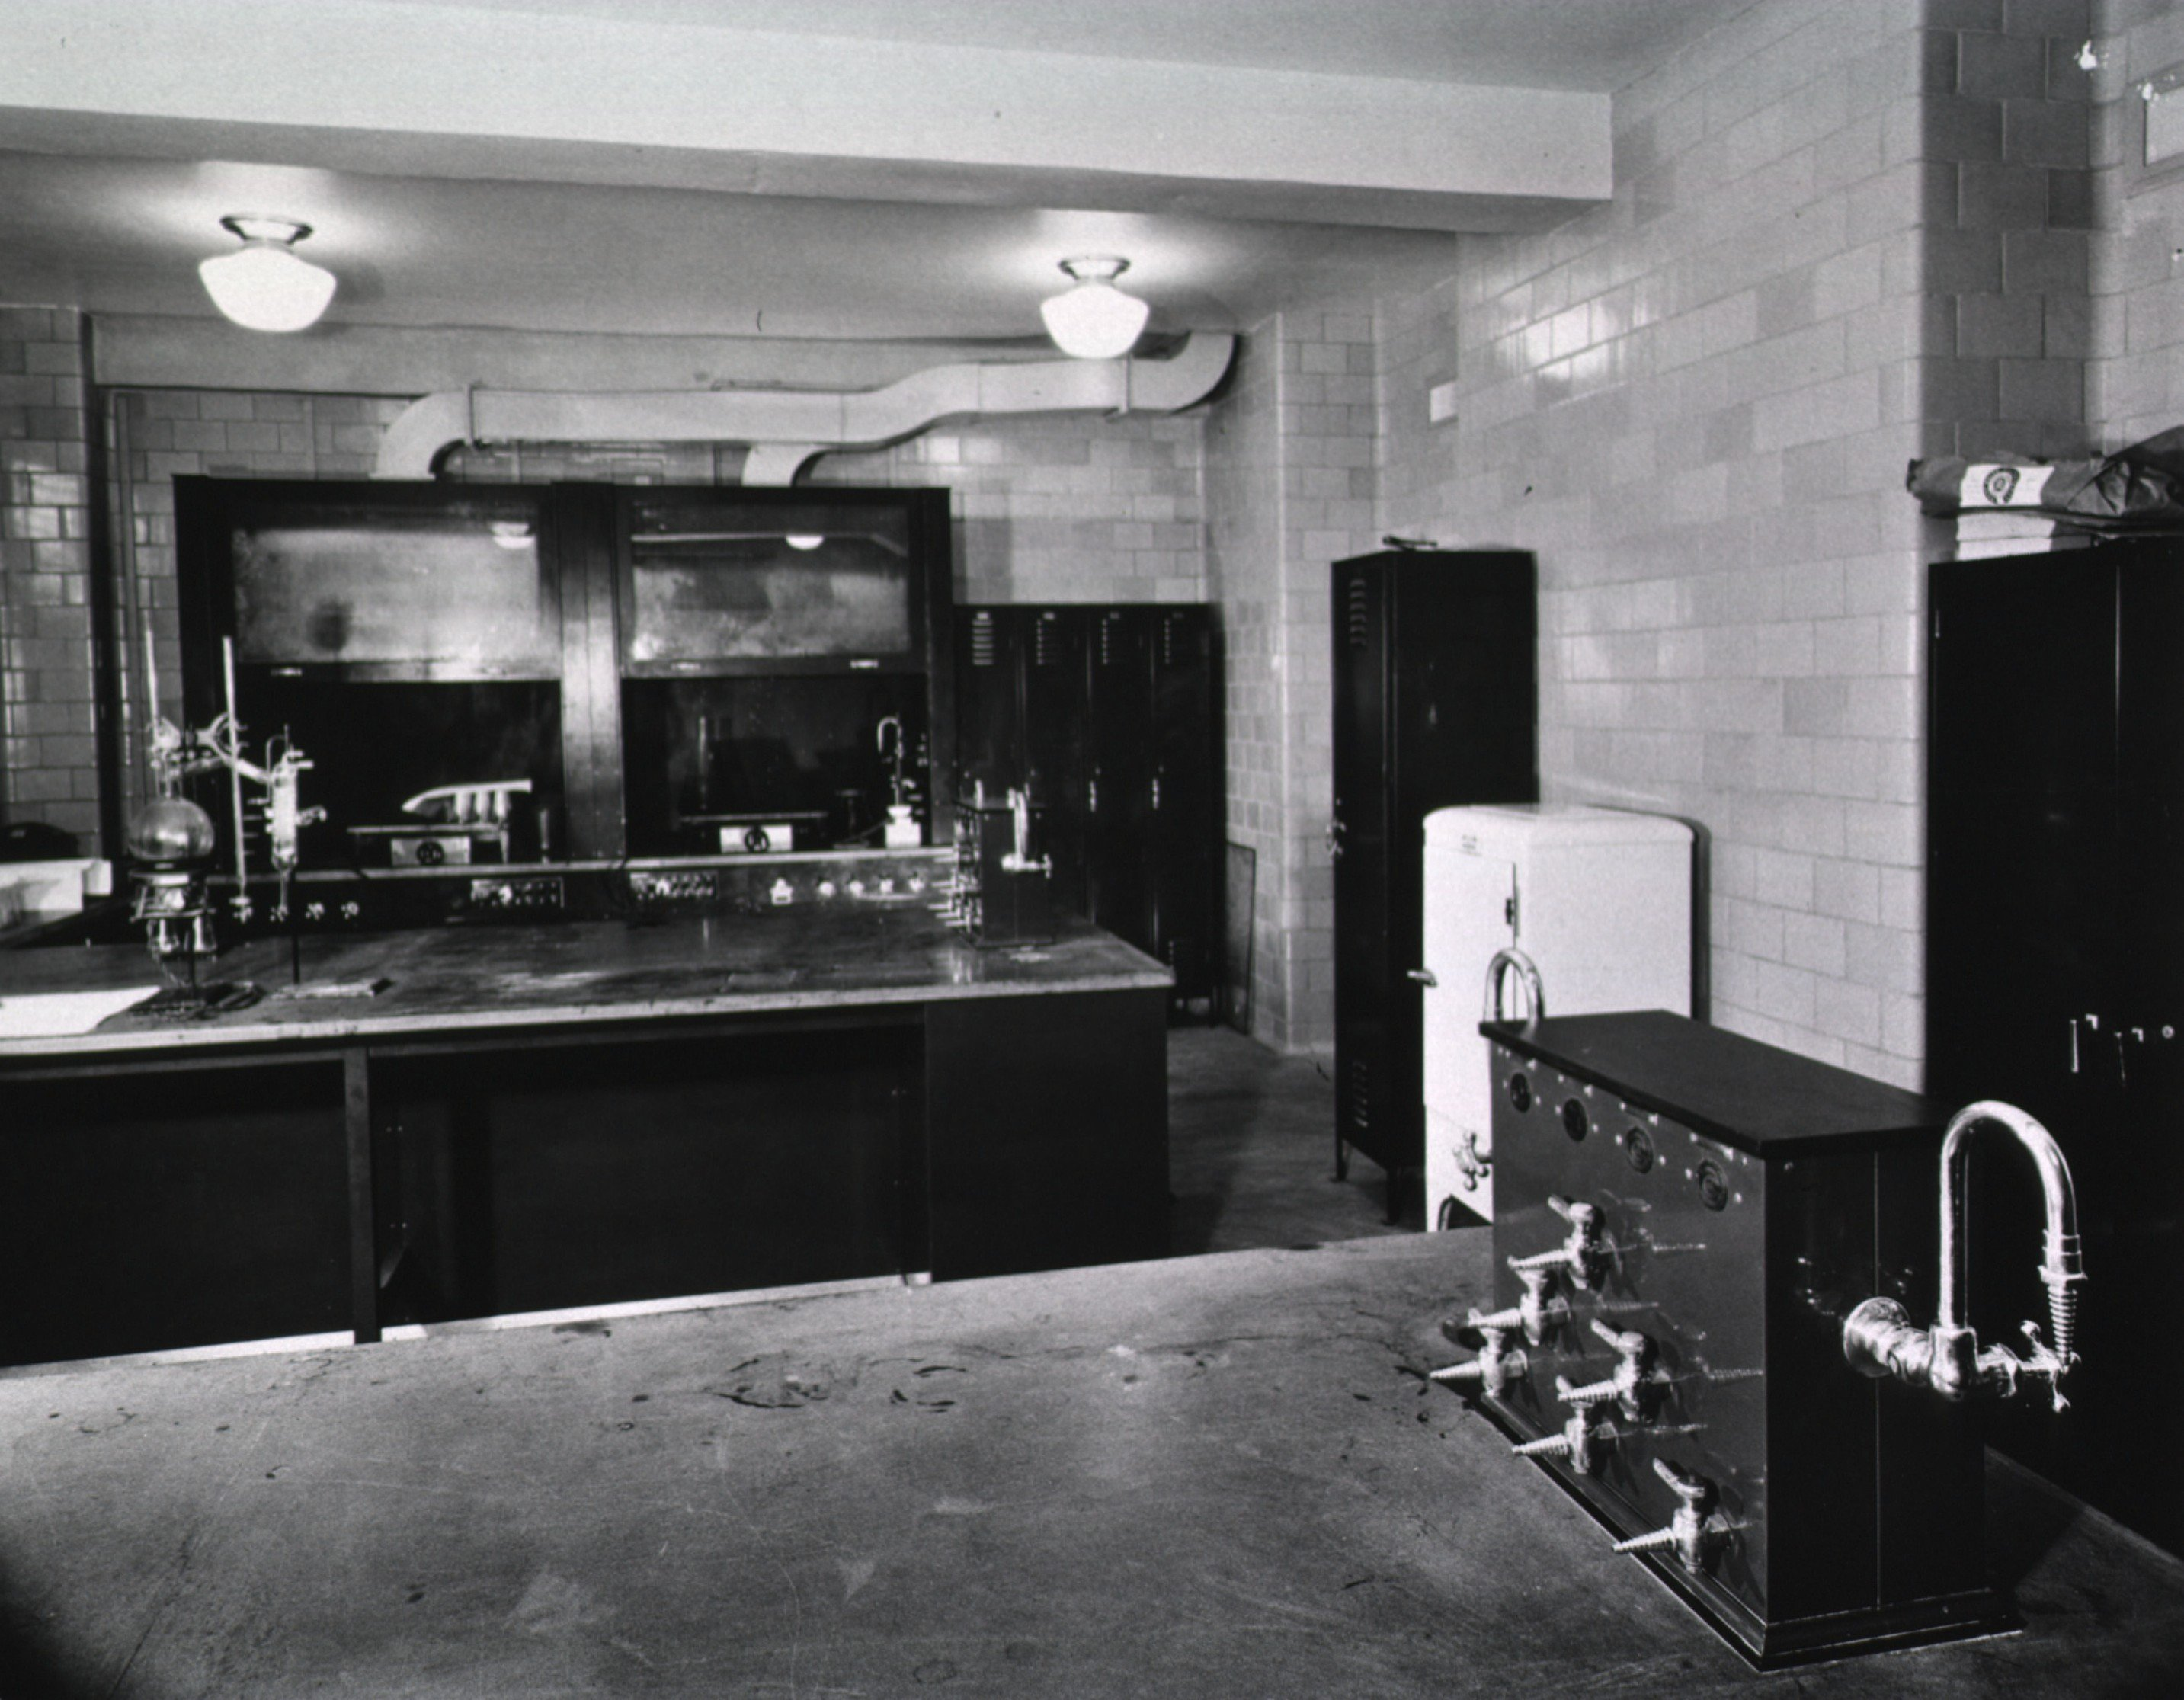 c. 1938. Laboratories in Building 2 were state-of-the-art for the time. Note the fume hoods and exhaust pipes in the background.  The valves in the foreground gave researchers easy access to gas, water, and compressed air.